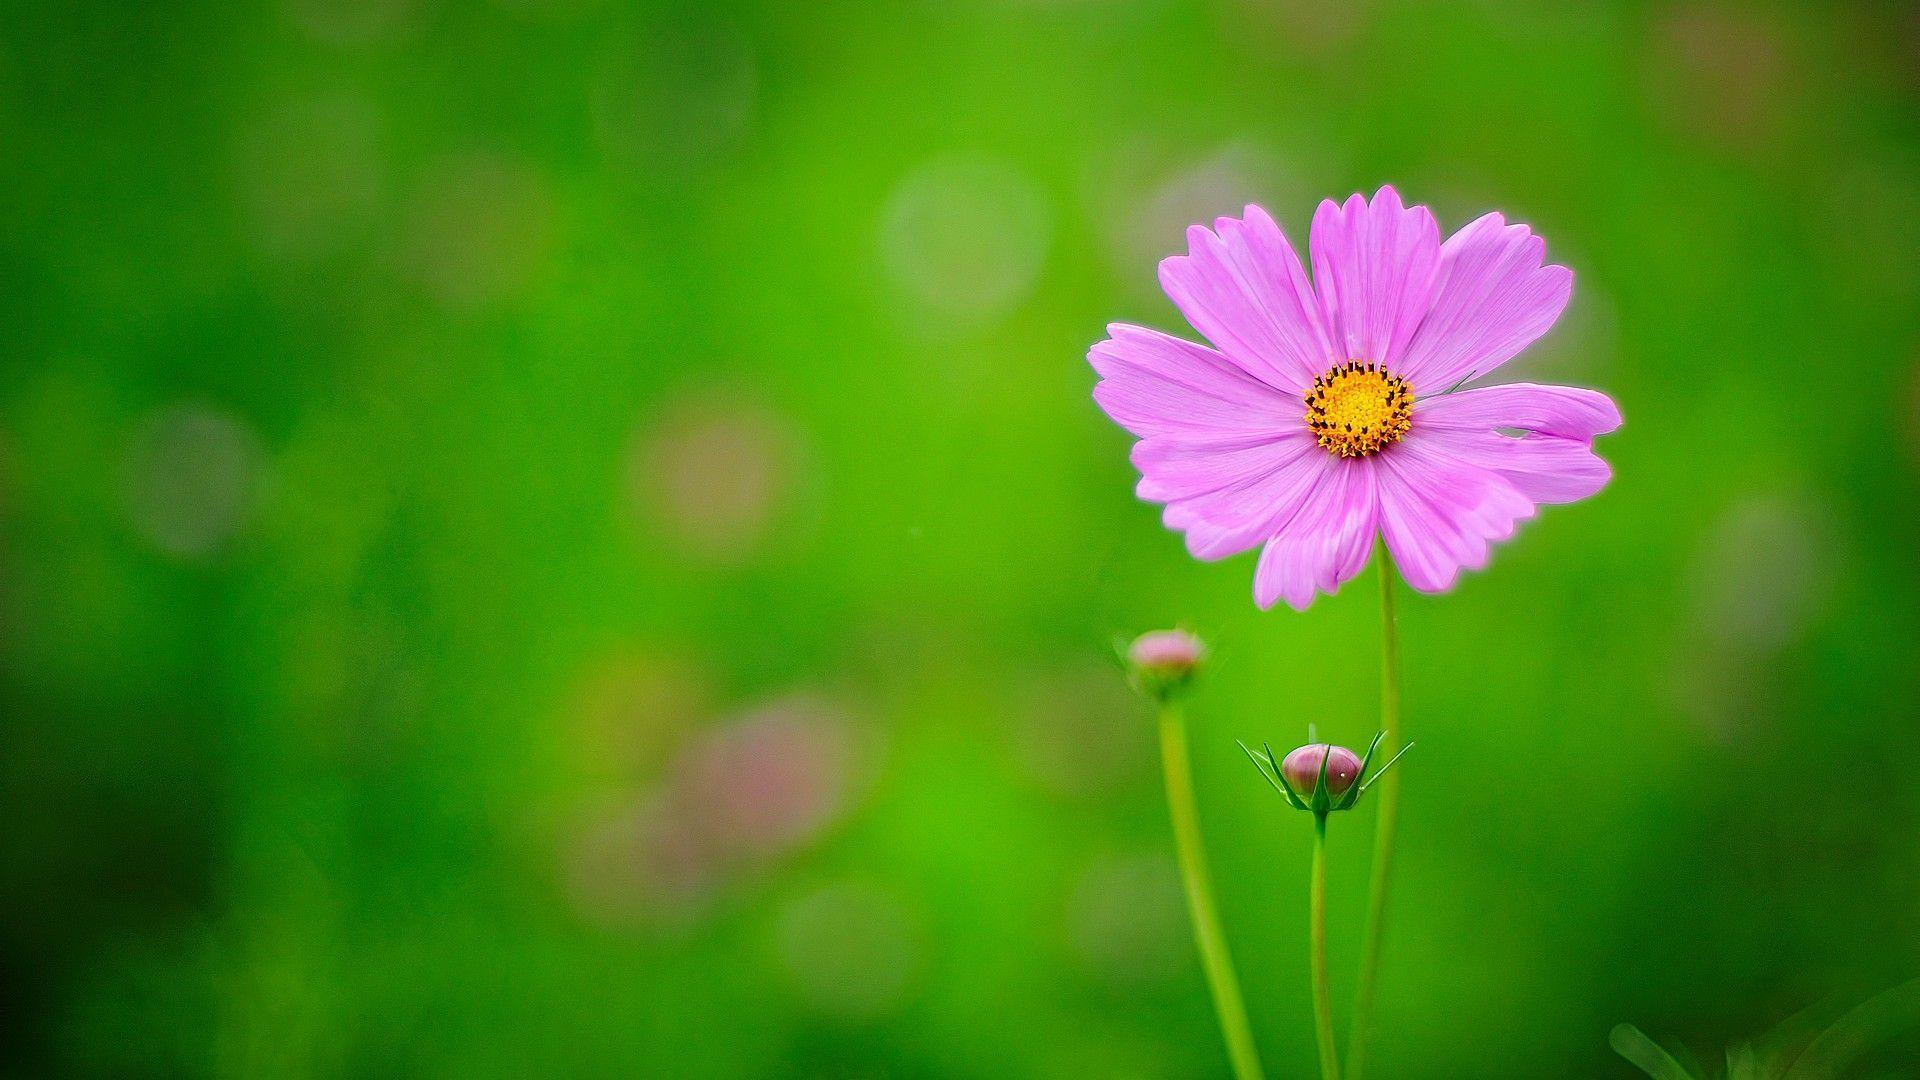 nature flower wallpapers flowers hd